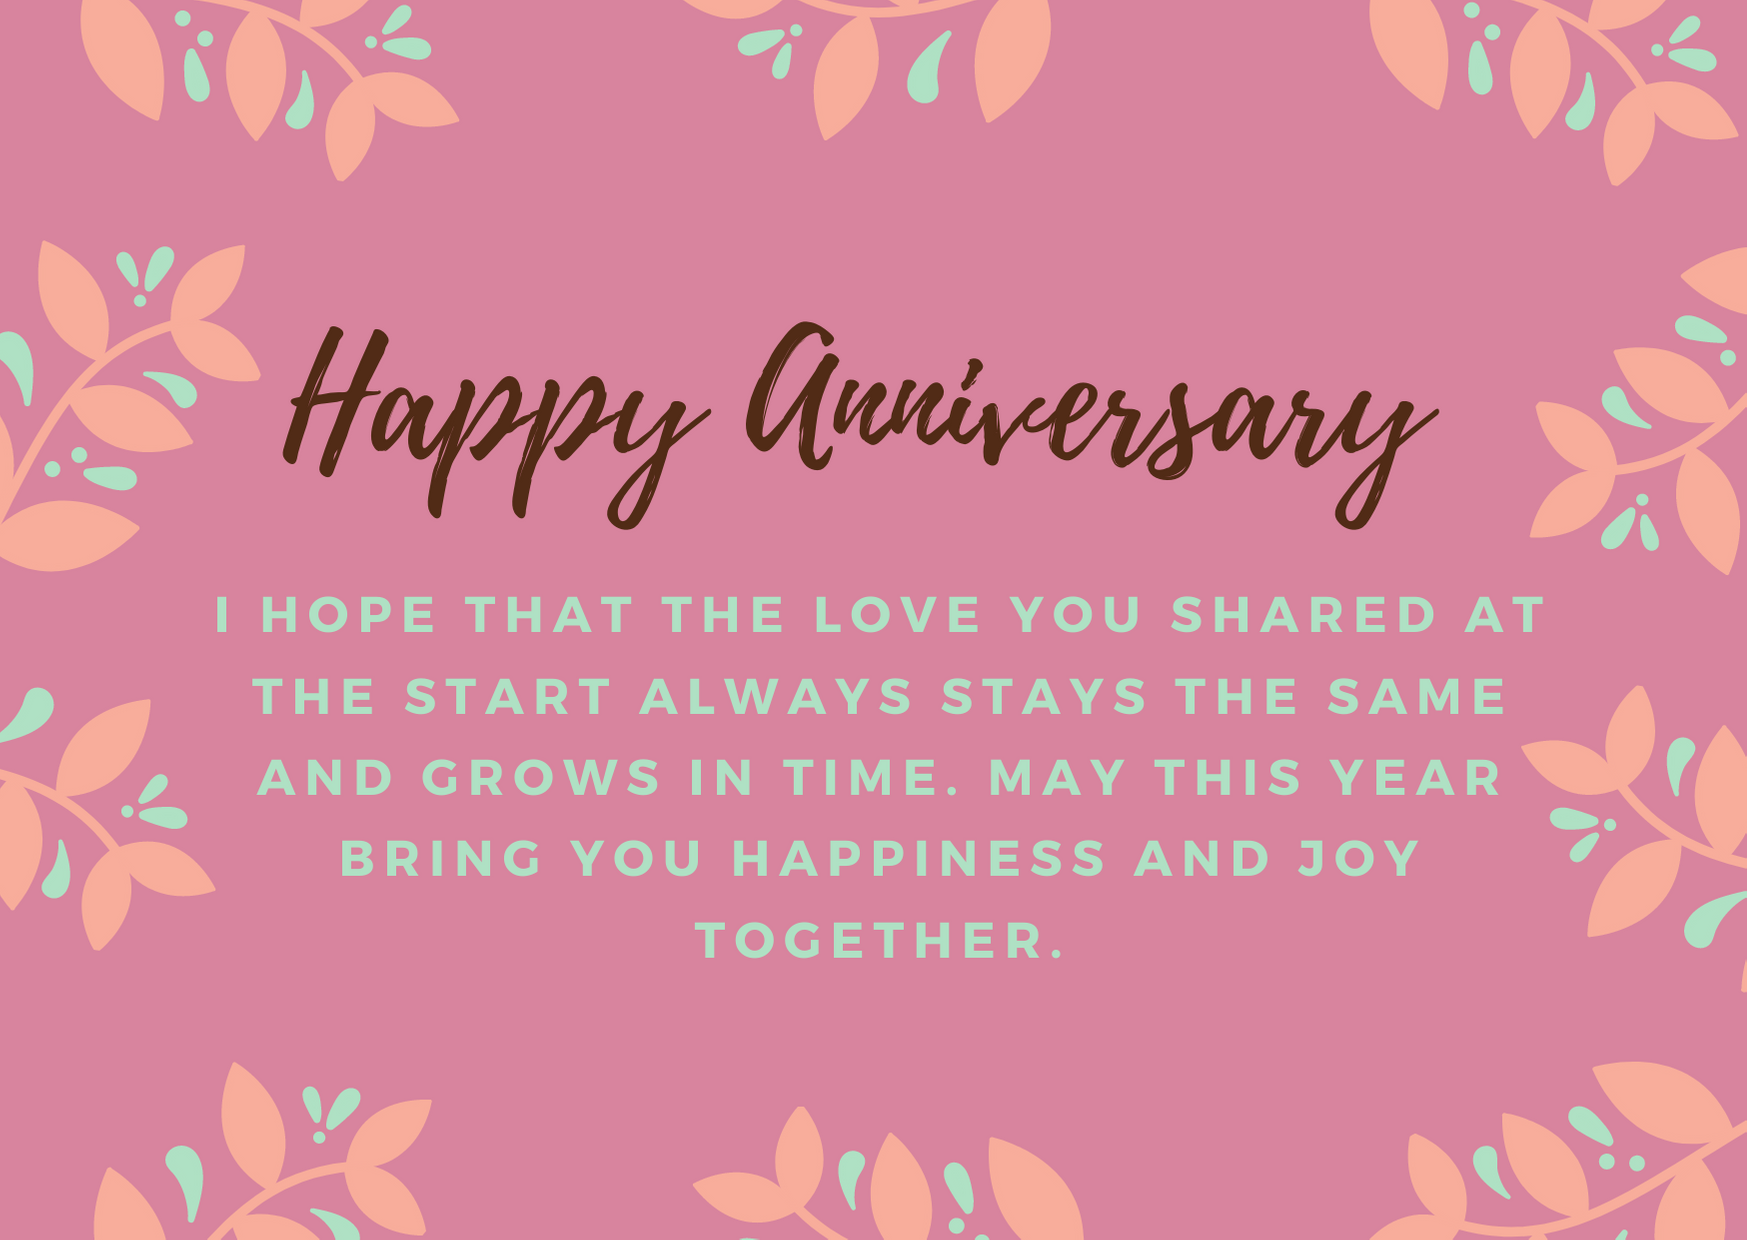 funny anniversary wishes for parents